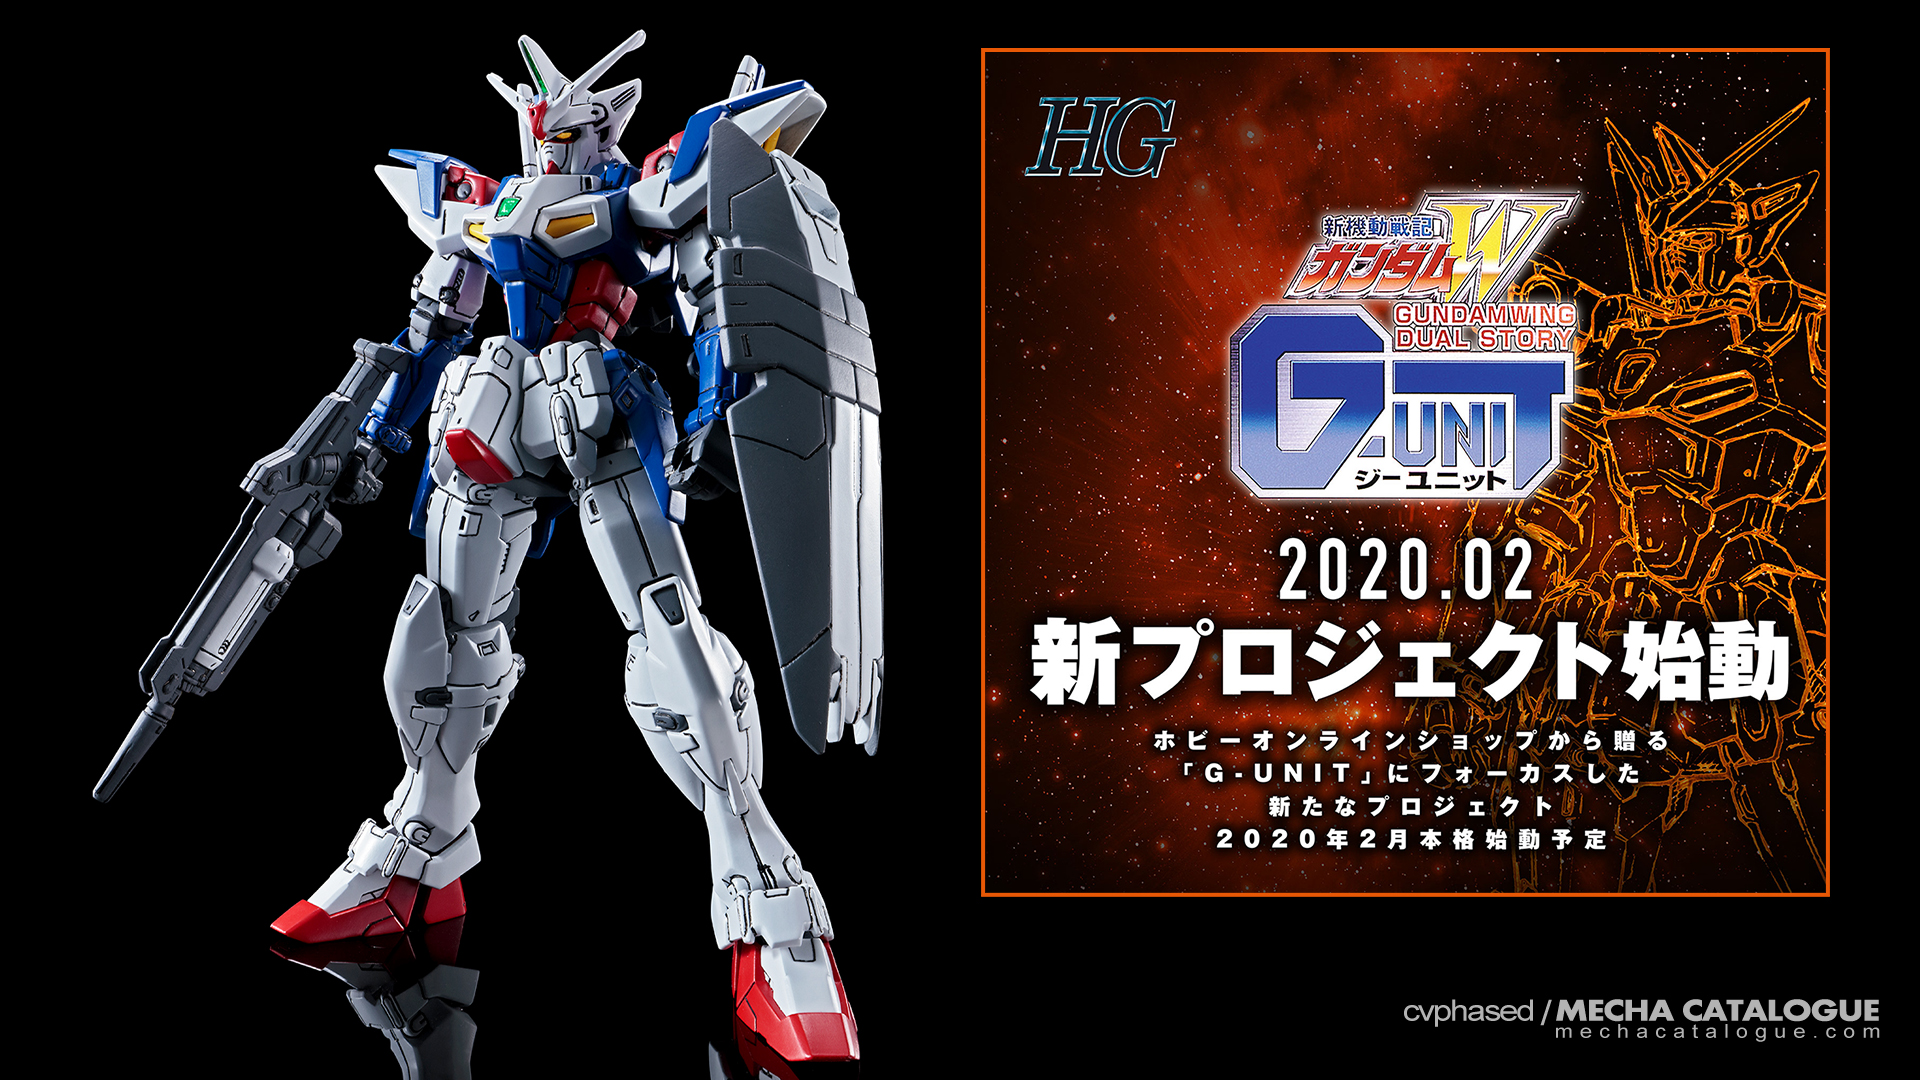 Next Phase Gunpla: Road to 2020